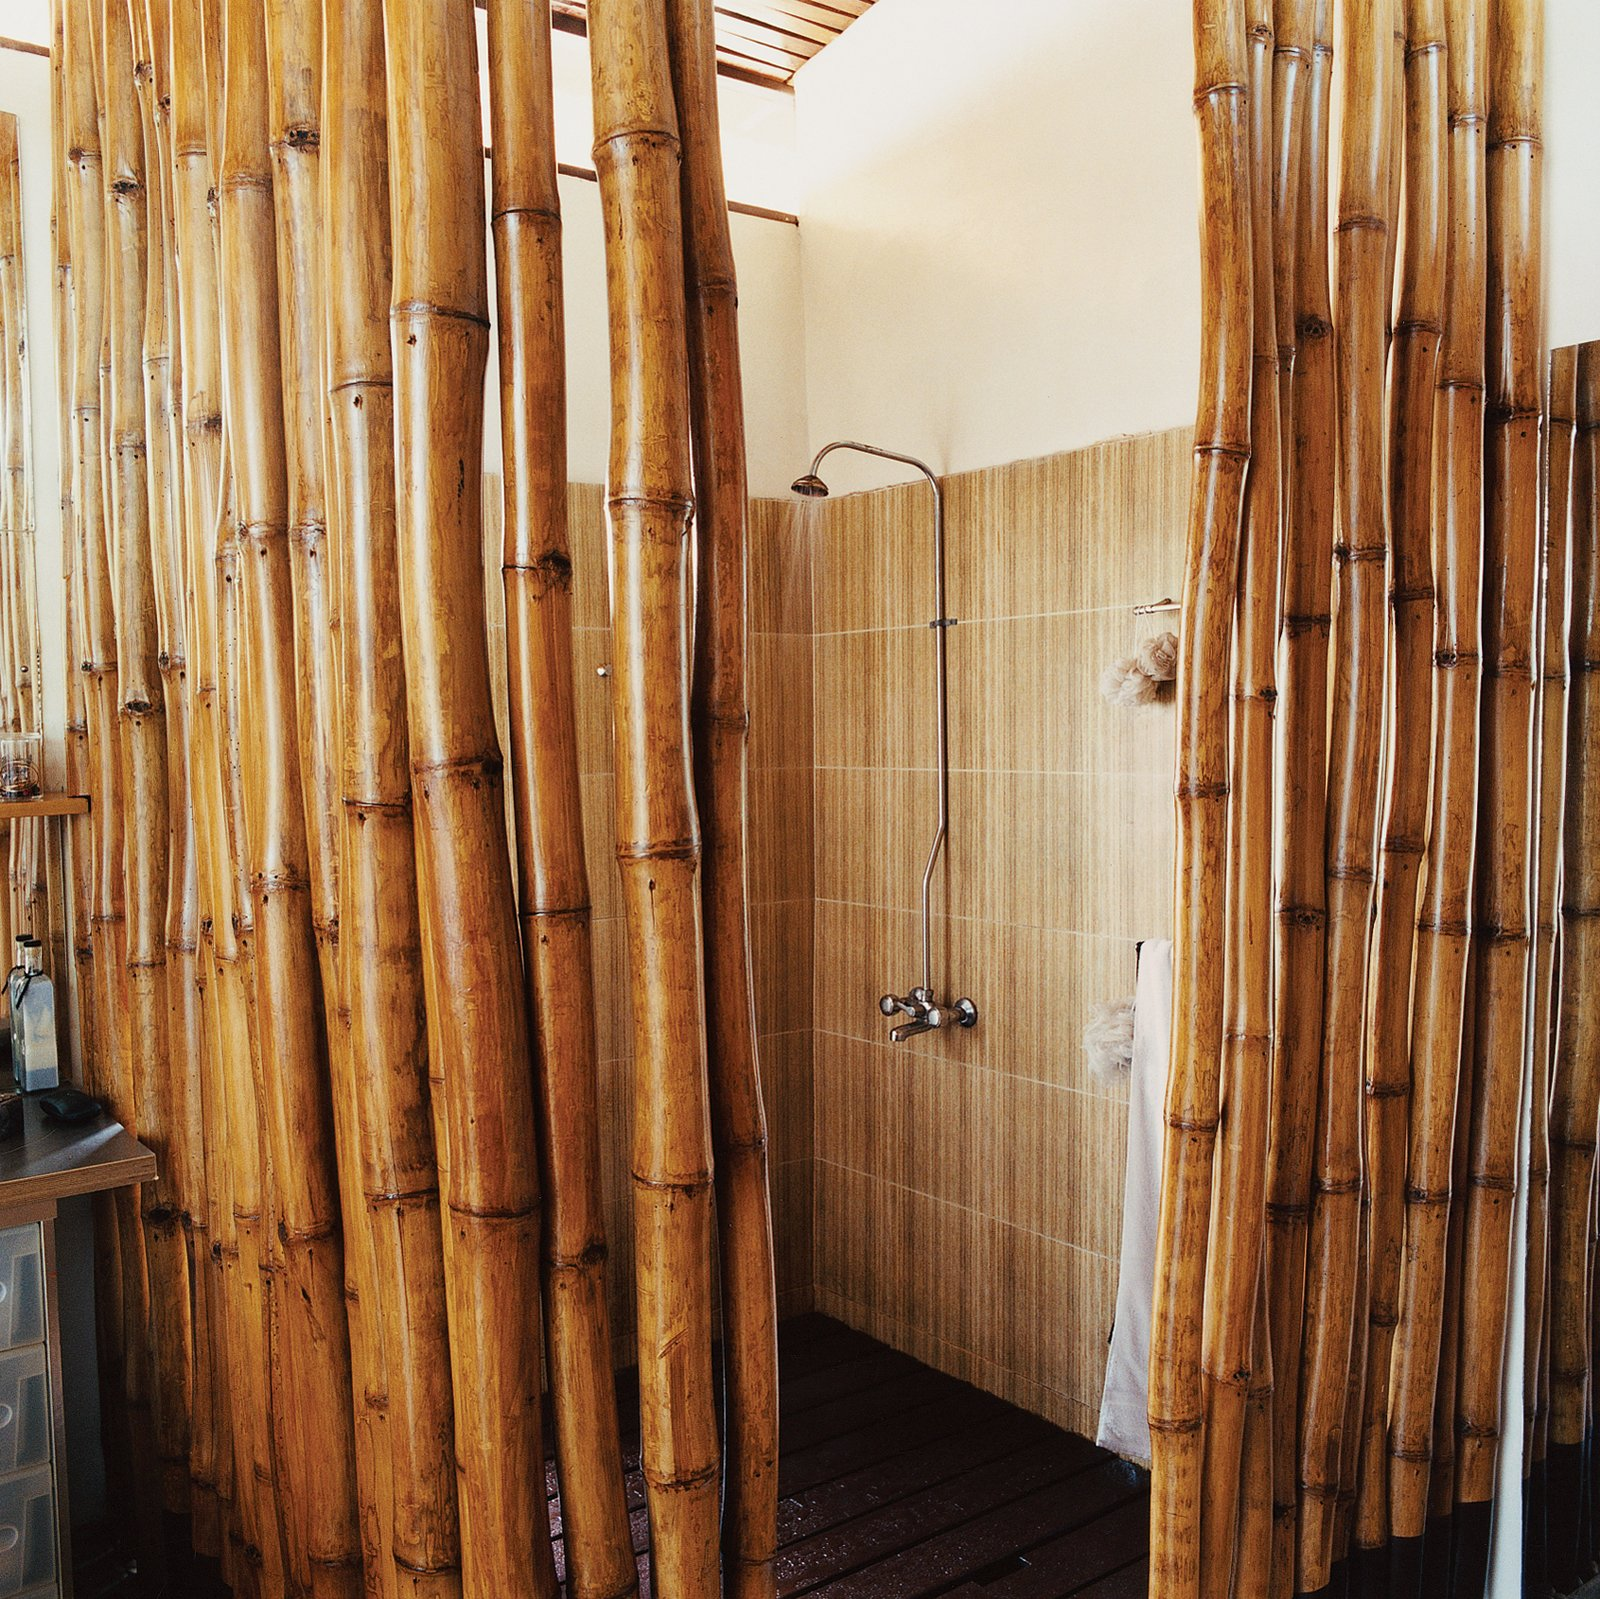 The six-by-six-foot shower boasts a hardwood-slatted deck, which allows water to seep into a concrete pan that empties into the main drainage system. The cage of bamboo poles provides the requisite privacy to the bather.  Photo 3 of 9 in 9 Unusual Modern Bathrooms from An Inno-native Approach